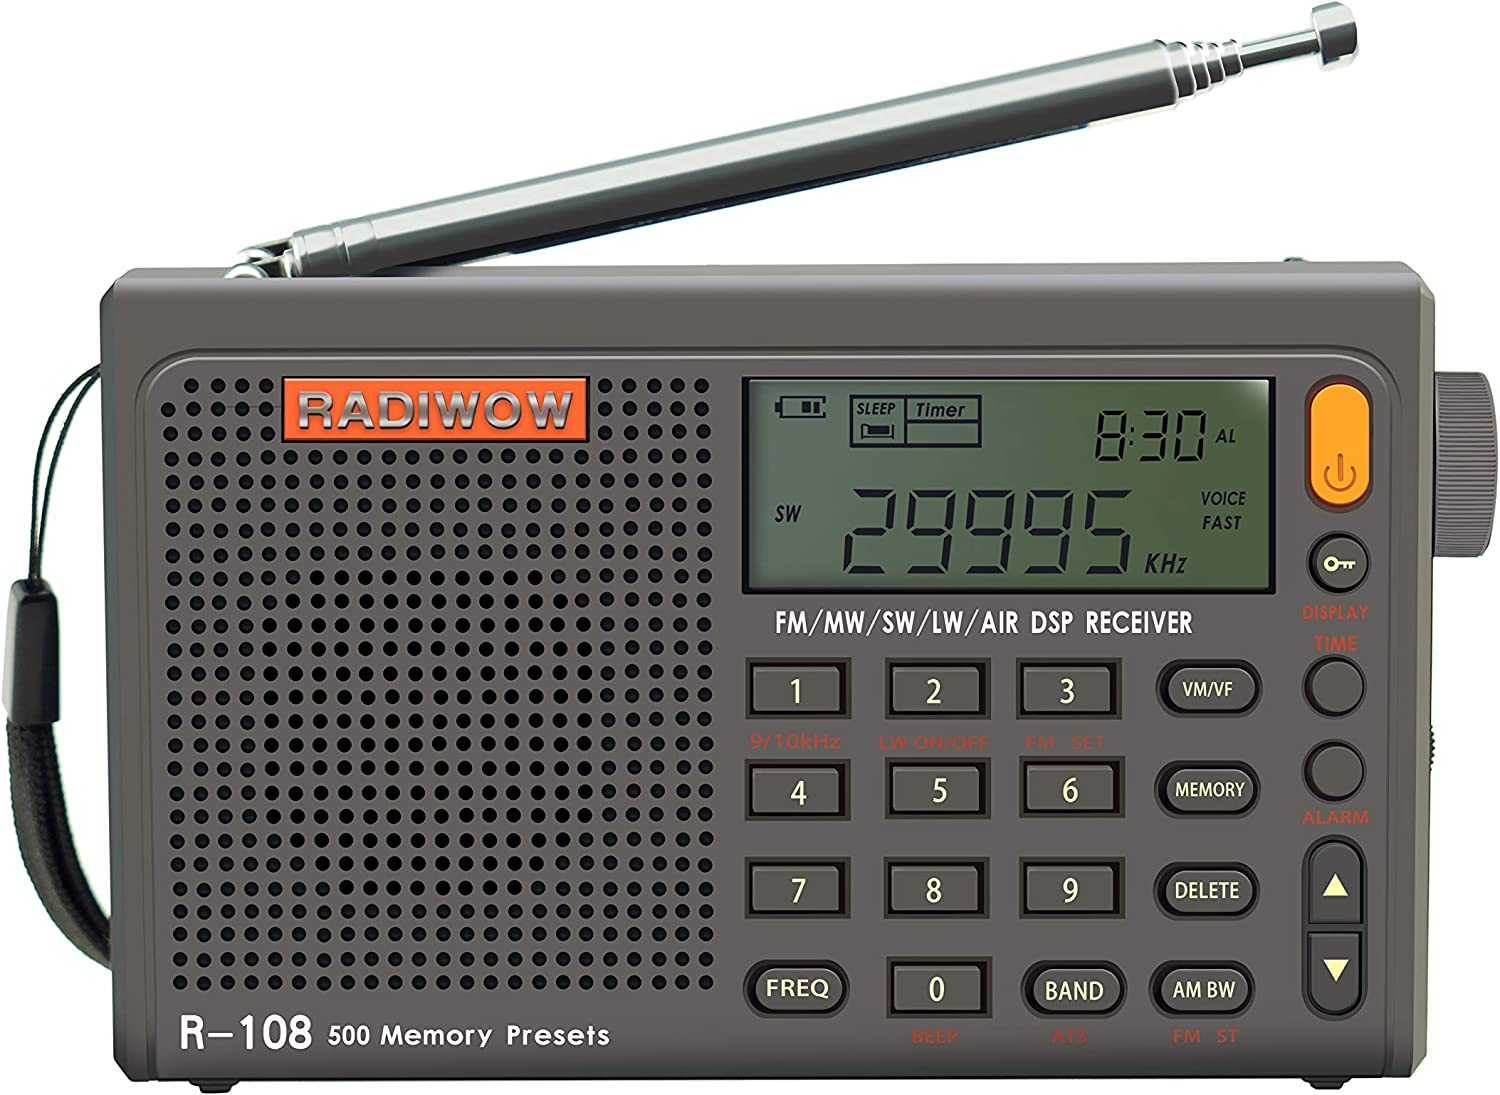 RADIWOW R-108 FM Stereo/LW/MW/SW/AIR Band/DSP Full Band Portable Radio with Headphones Jack and Antenna Jack, Sleep Timer and Alarm Clock, 500 Memories preset Stations (100 preset for Each Band).: Home Audio & Theater